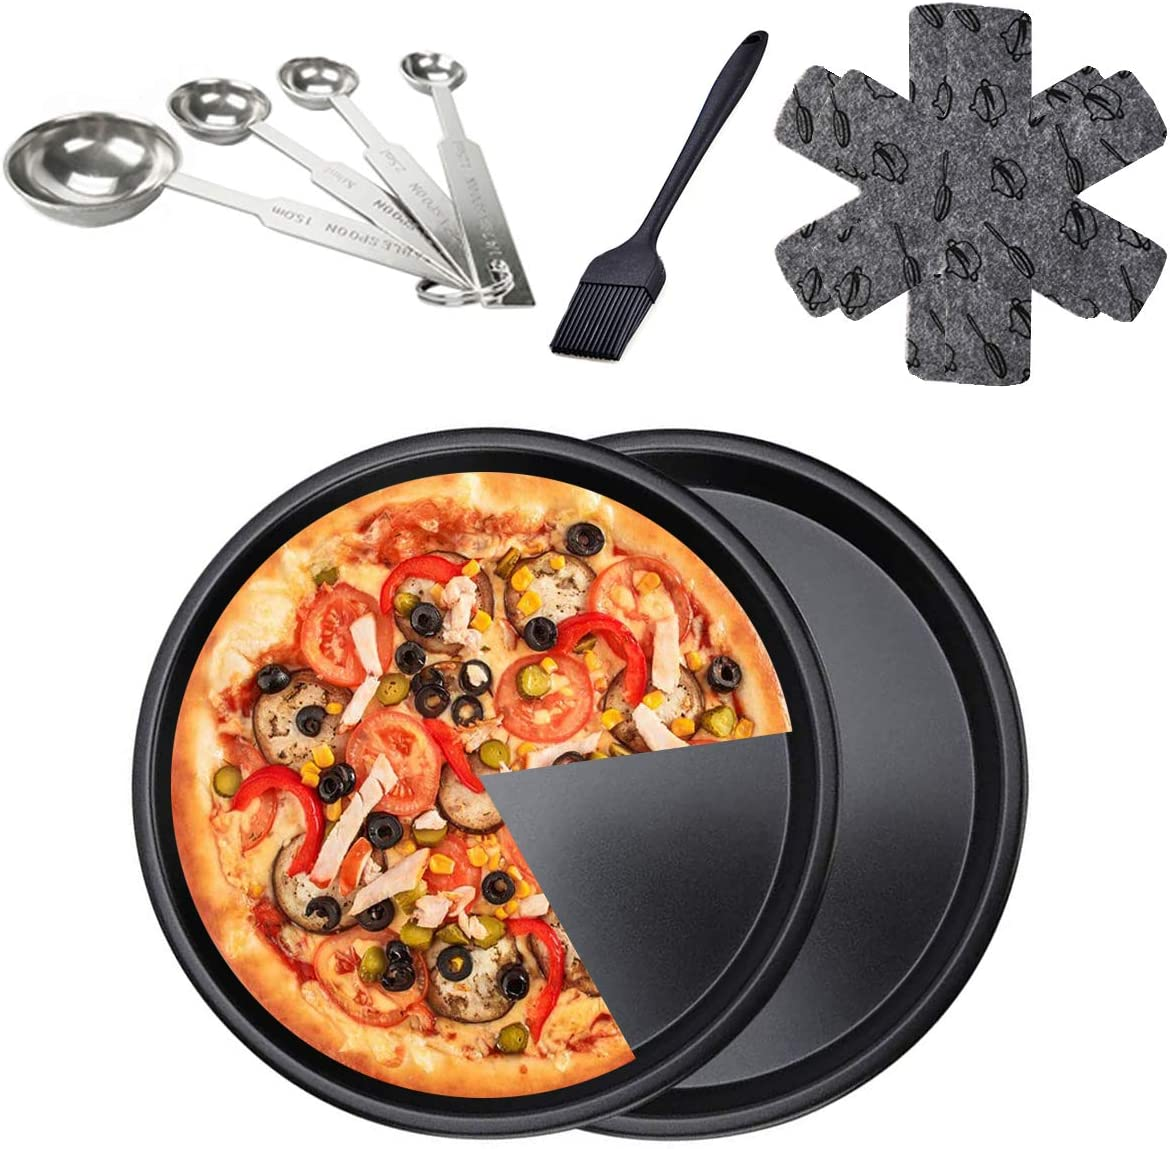 Pizza Pan 10 Inch for Oven , Stainless Steel Pizza Deep Dish Pizza Tray, Round Baking Pan, Nonstick Baking Sheets, Circle Pizza Plates Cooker, Home Metal Pizza Plate Bakeware Sets (2Pcs)